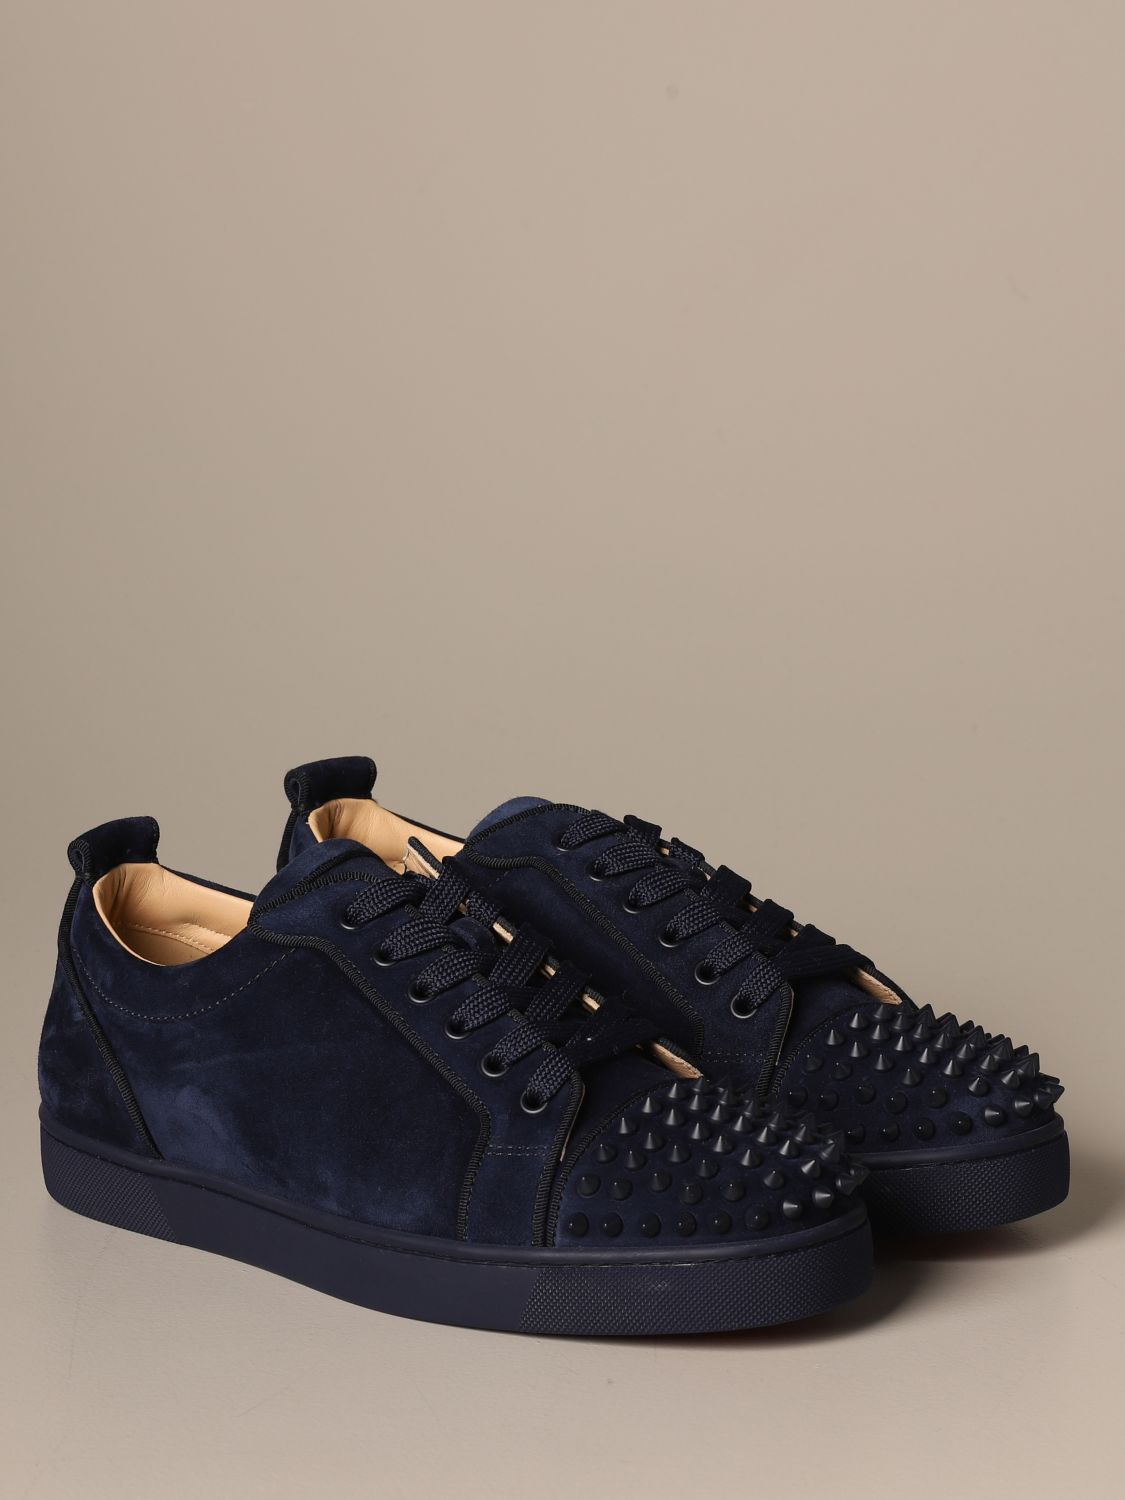 Sneakers Christian Louboutin: Louis Junior Christian Louboutin sneakers in suede with studs blue 2